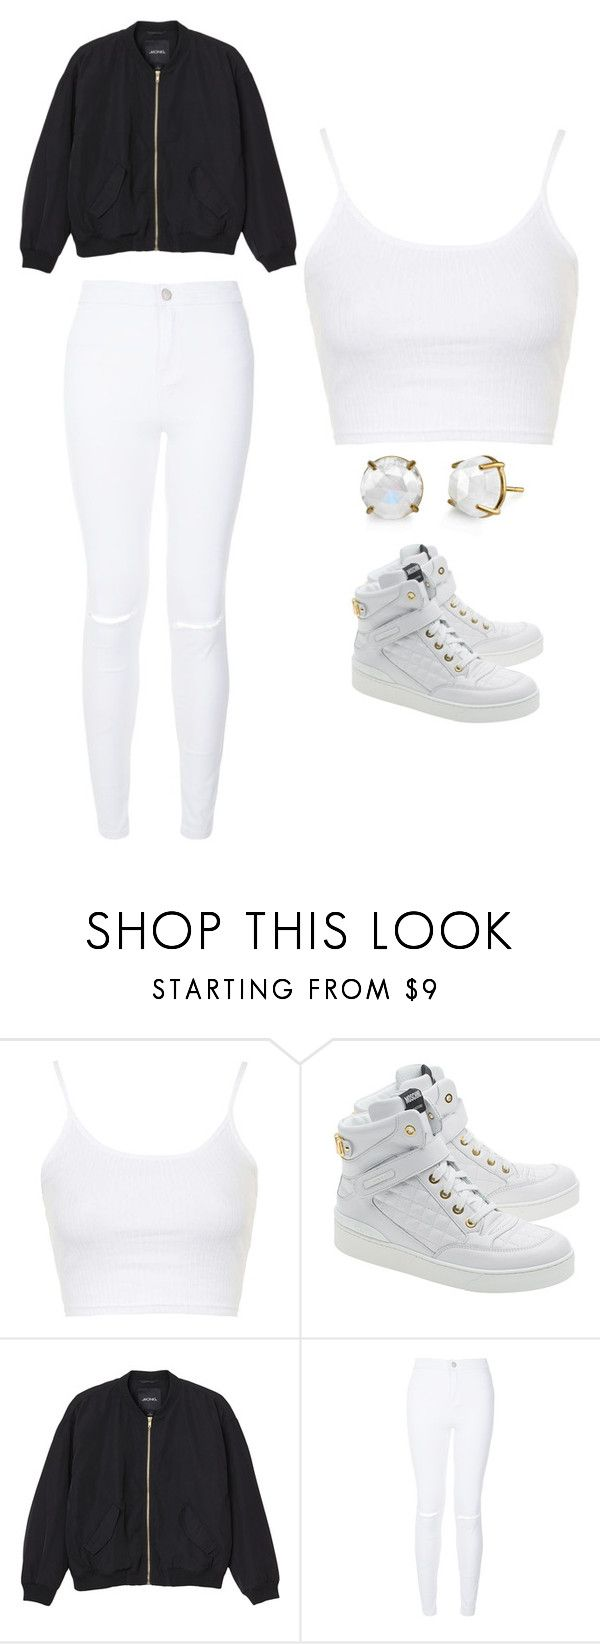 """Outfit Idea by Polyvore Remix"" by polyvore-remix ❤ liked on Polyvore featuring Topshop, Moschino, Monki, women's clothing, women, female, woman, misses and juniors"